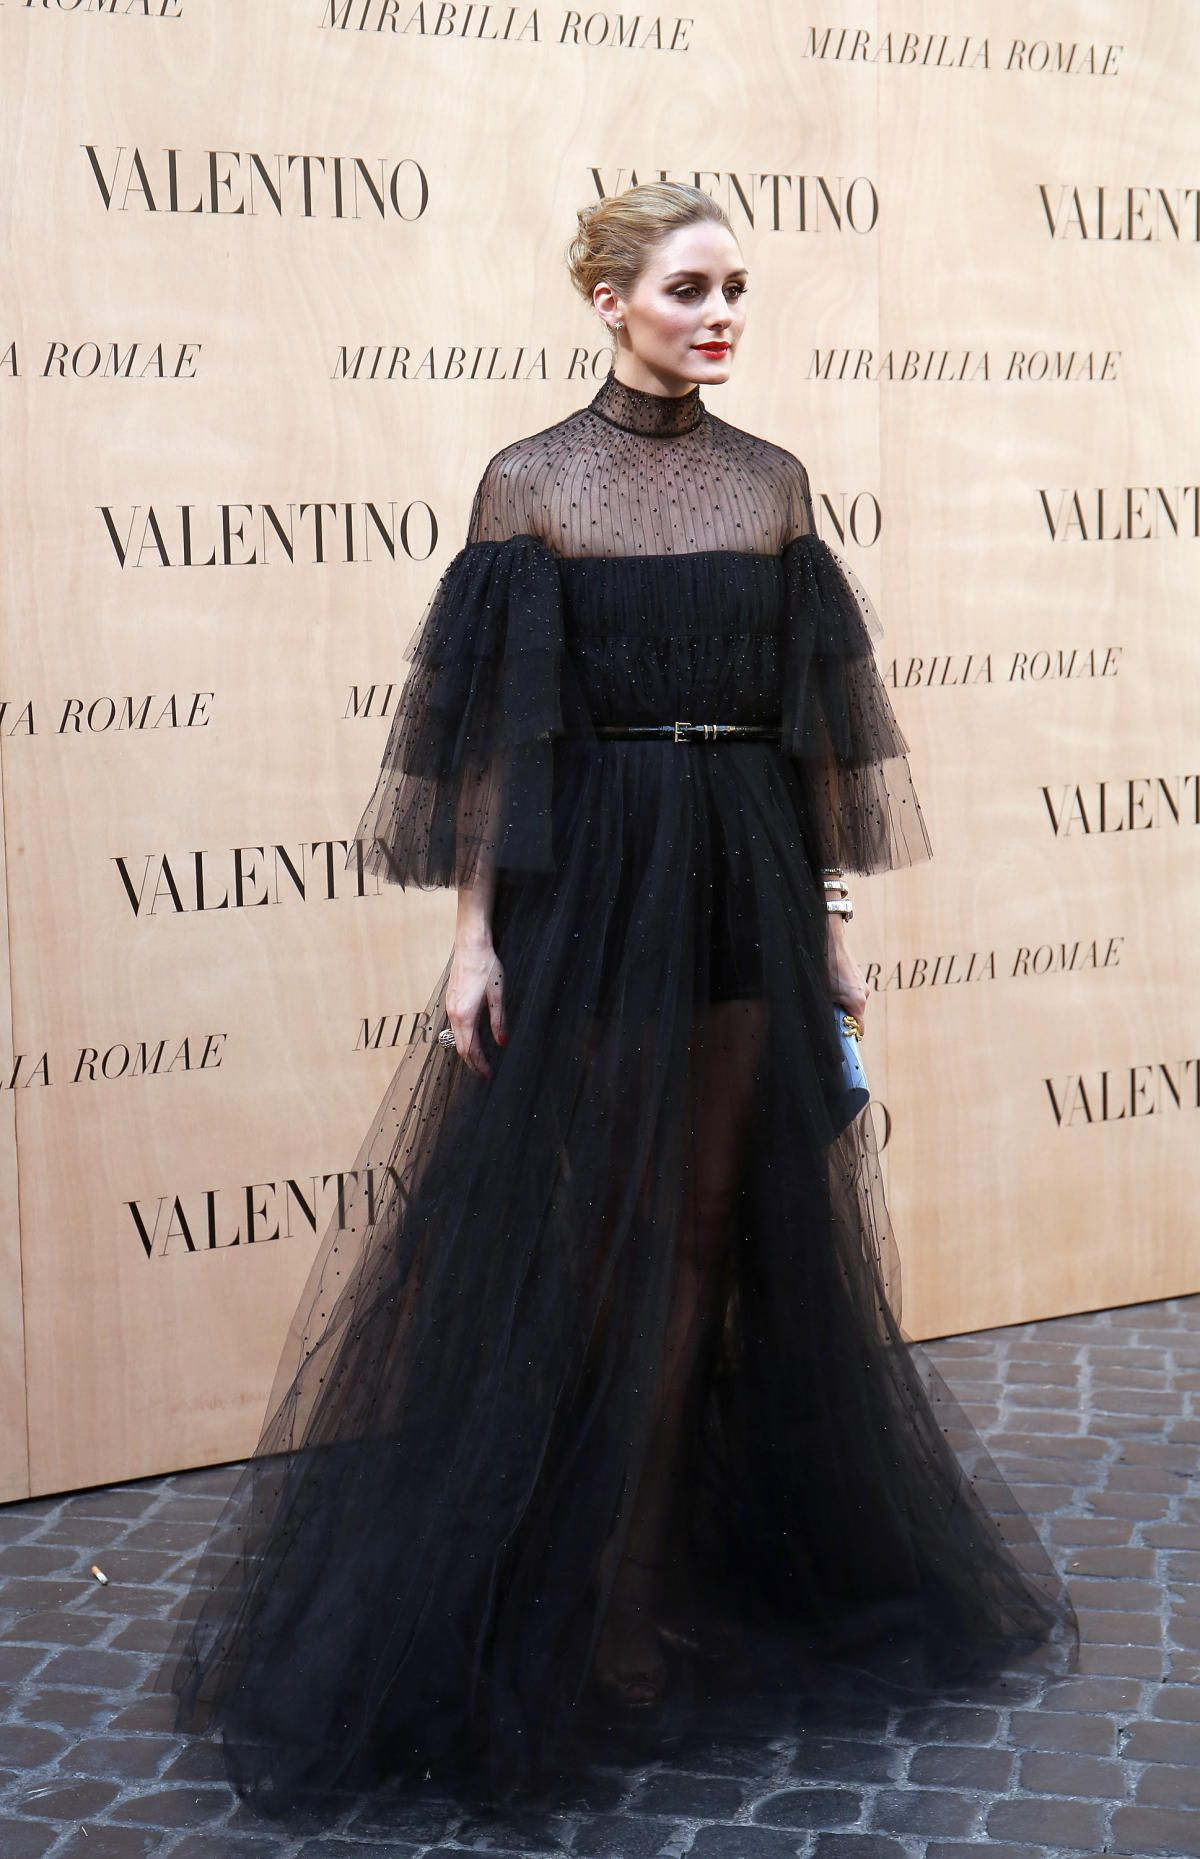 Olivia Palermo in Valentino at the Valentino couture show in Rome. Photo: Elisabetta Villa/Getty Images.